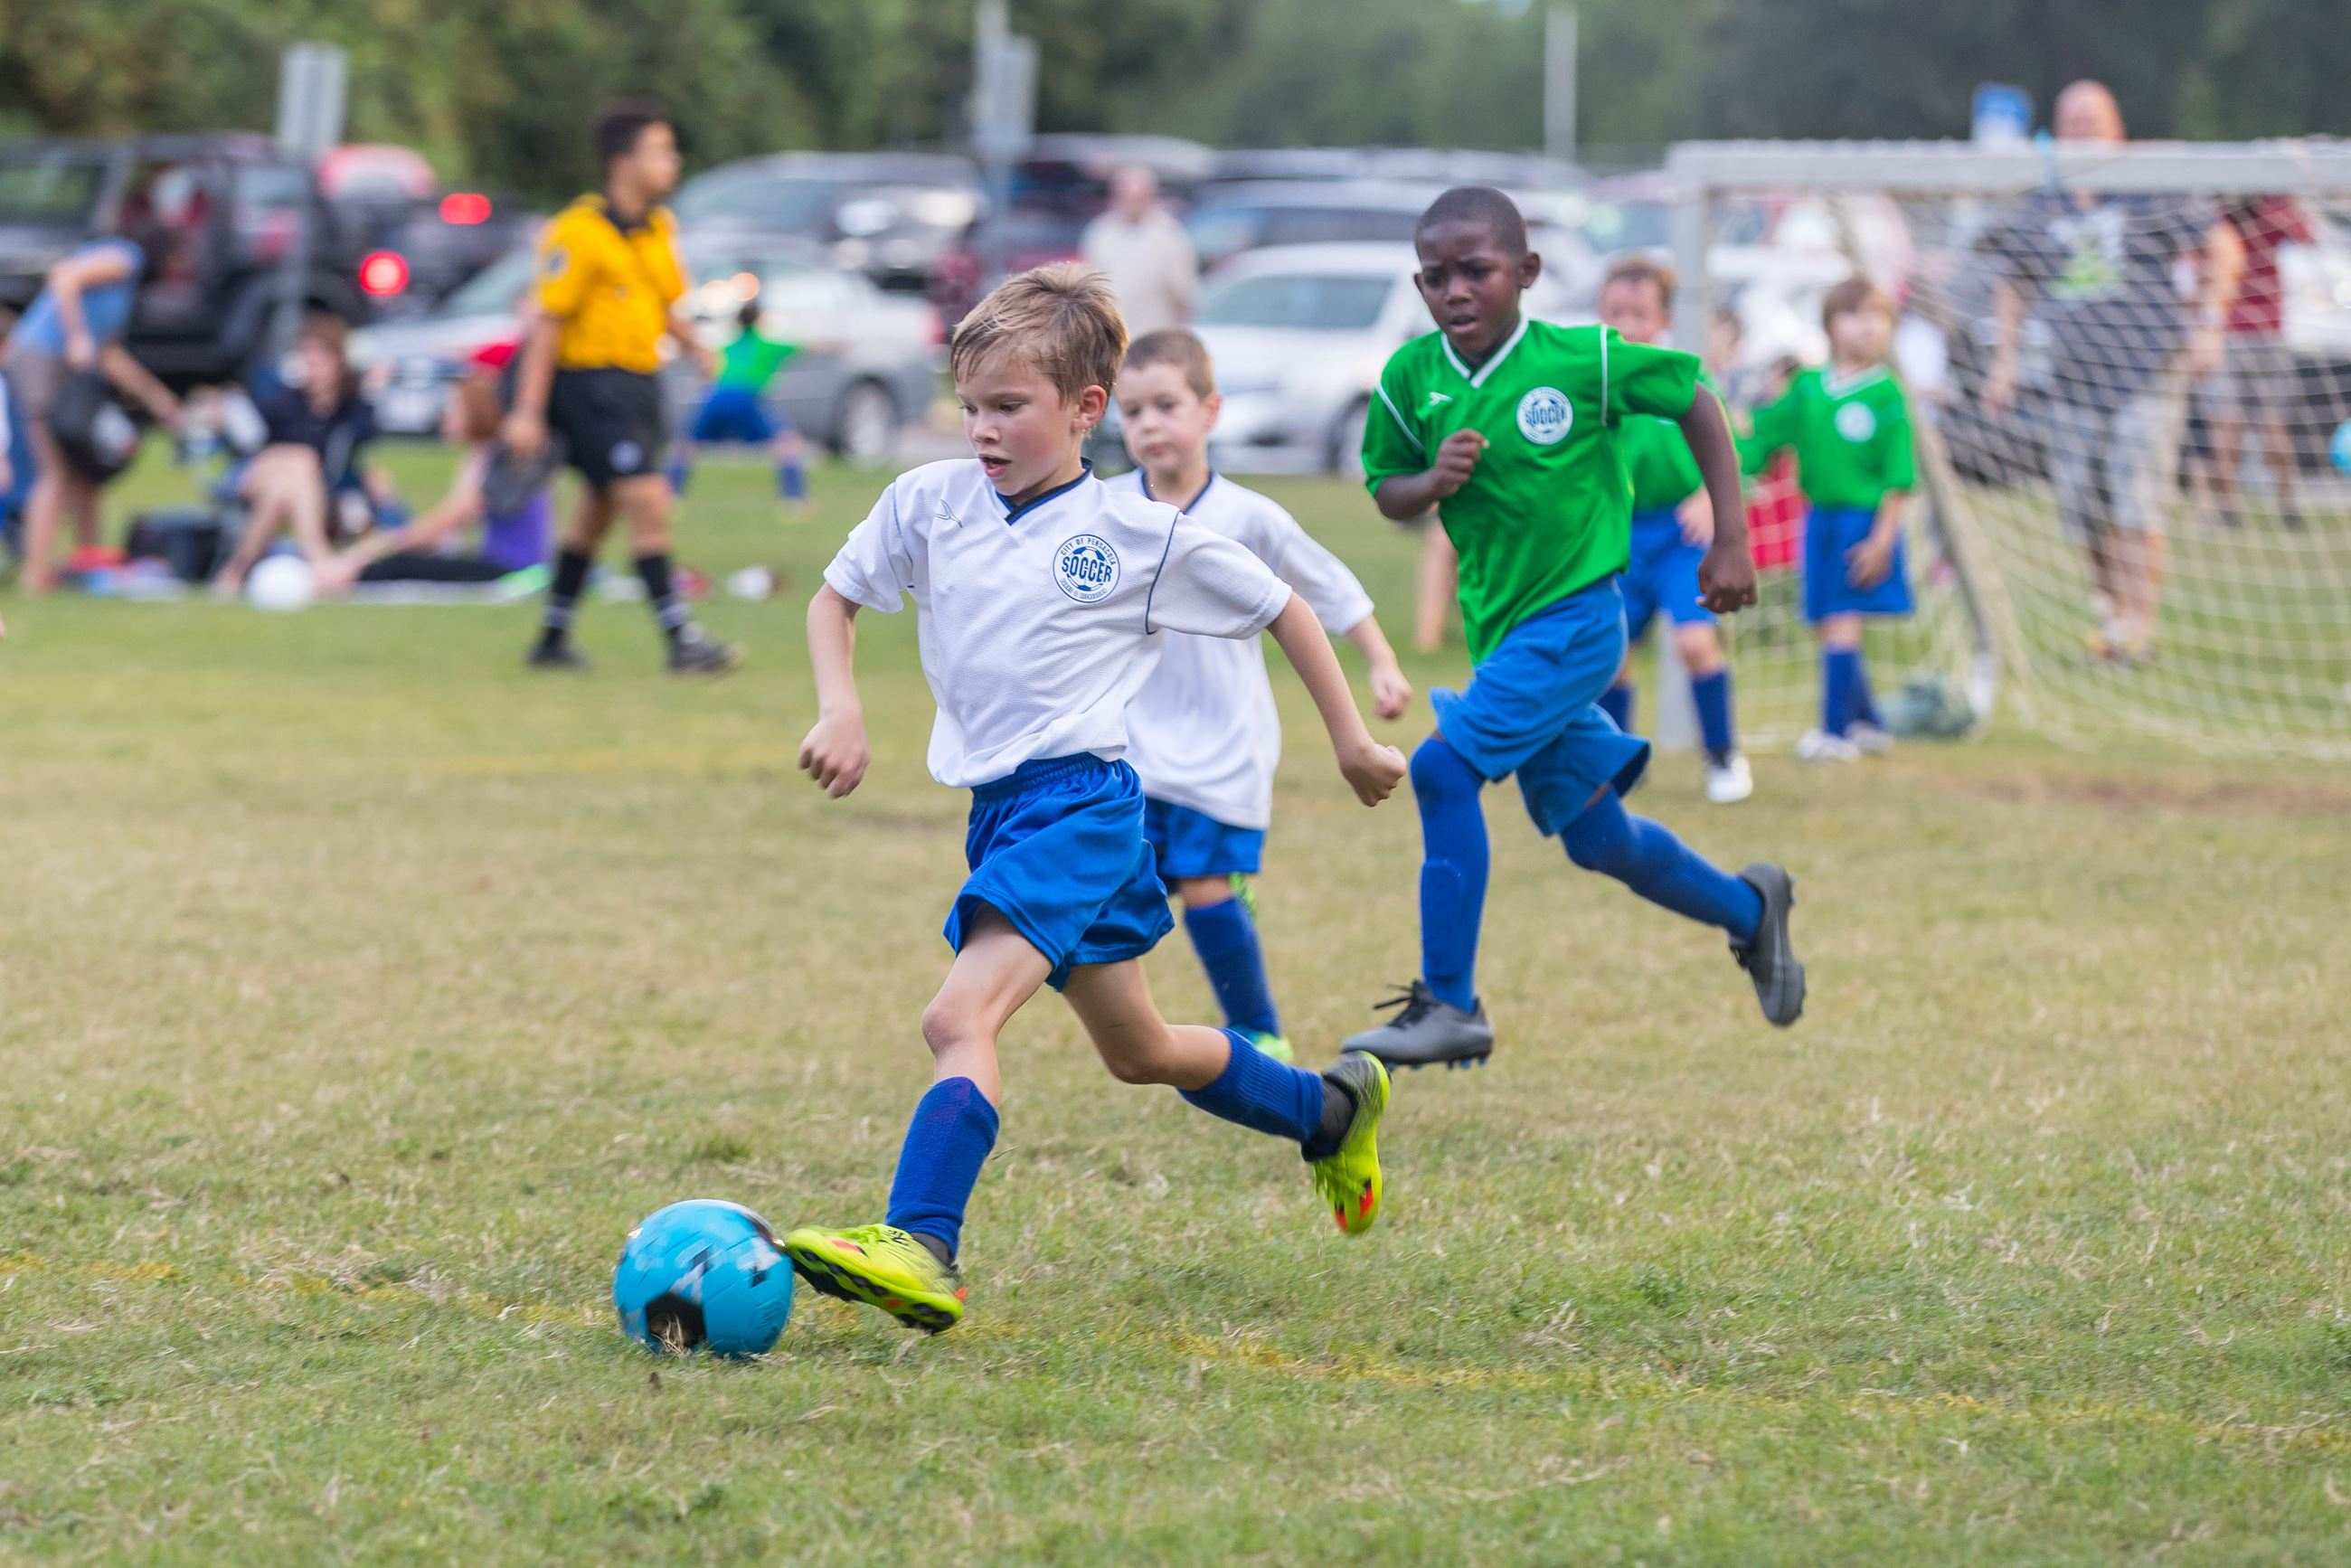 Young boy in blue and white uniform kicking soccer ball